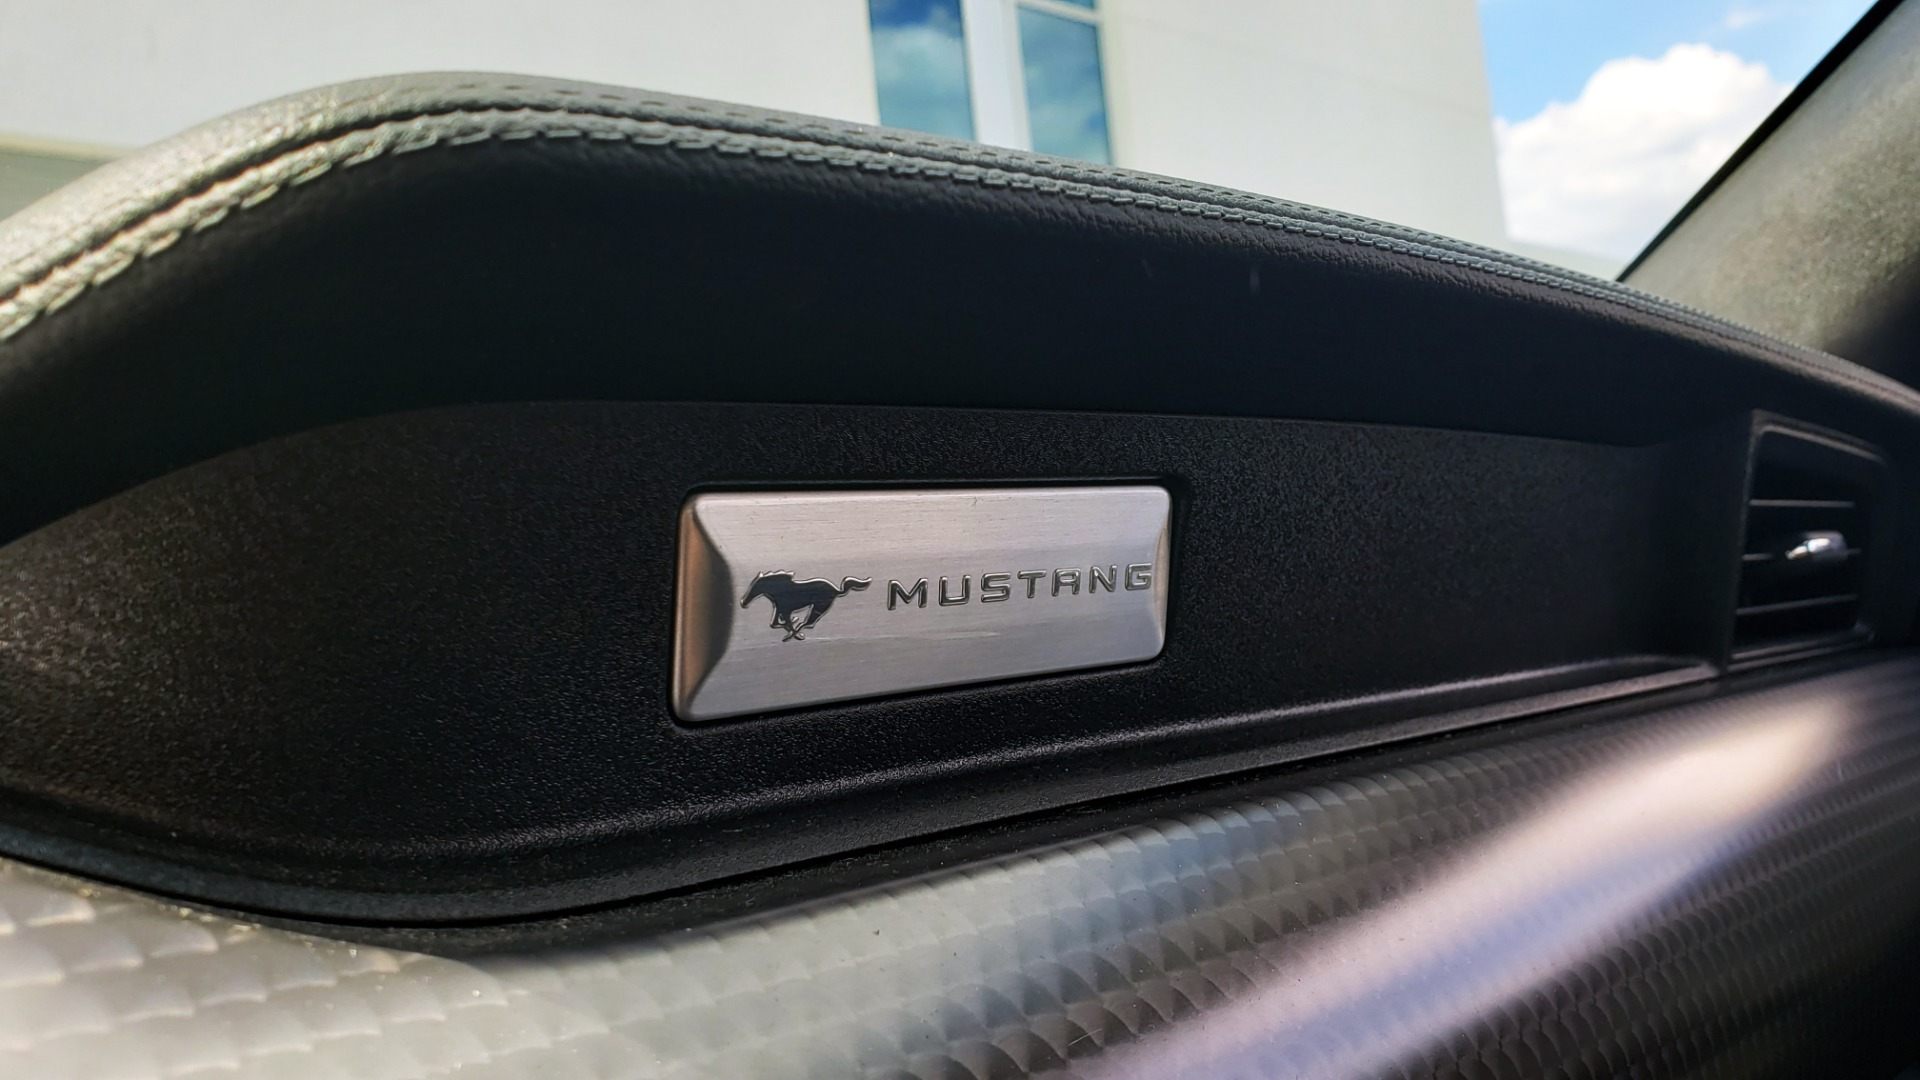 Used 2018 Ford MUSTANG GT COUPE / 5.0L V8 / AUTO / PERF PKG / REARVIEW / 19IN WHLS for sale Sold at Formula Imports in Charlotte NC 28227 55